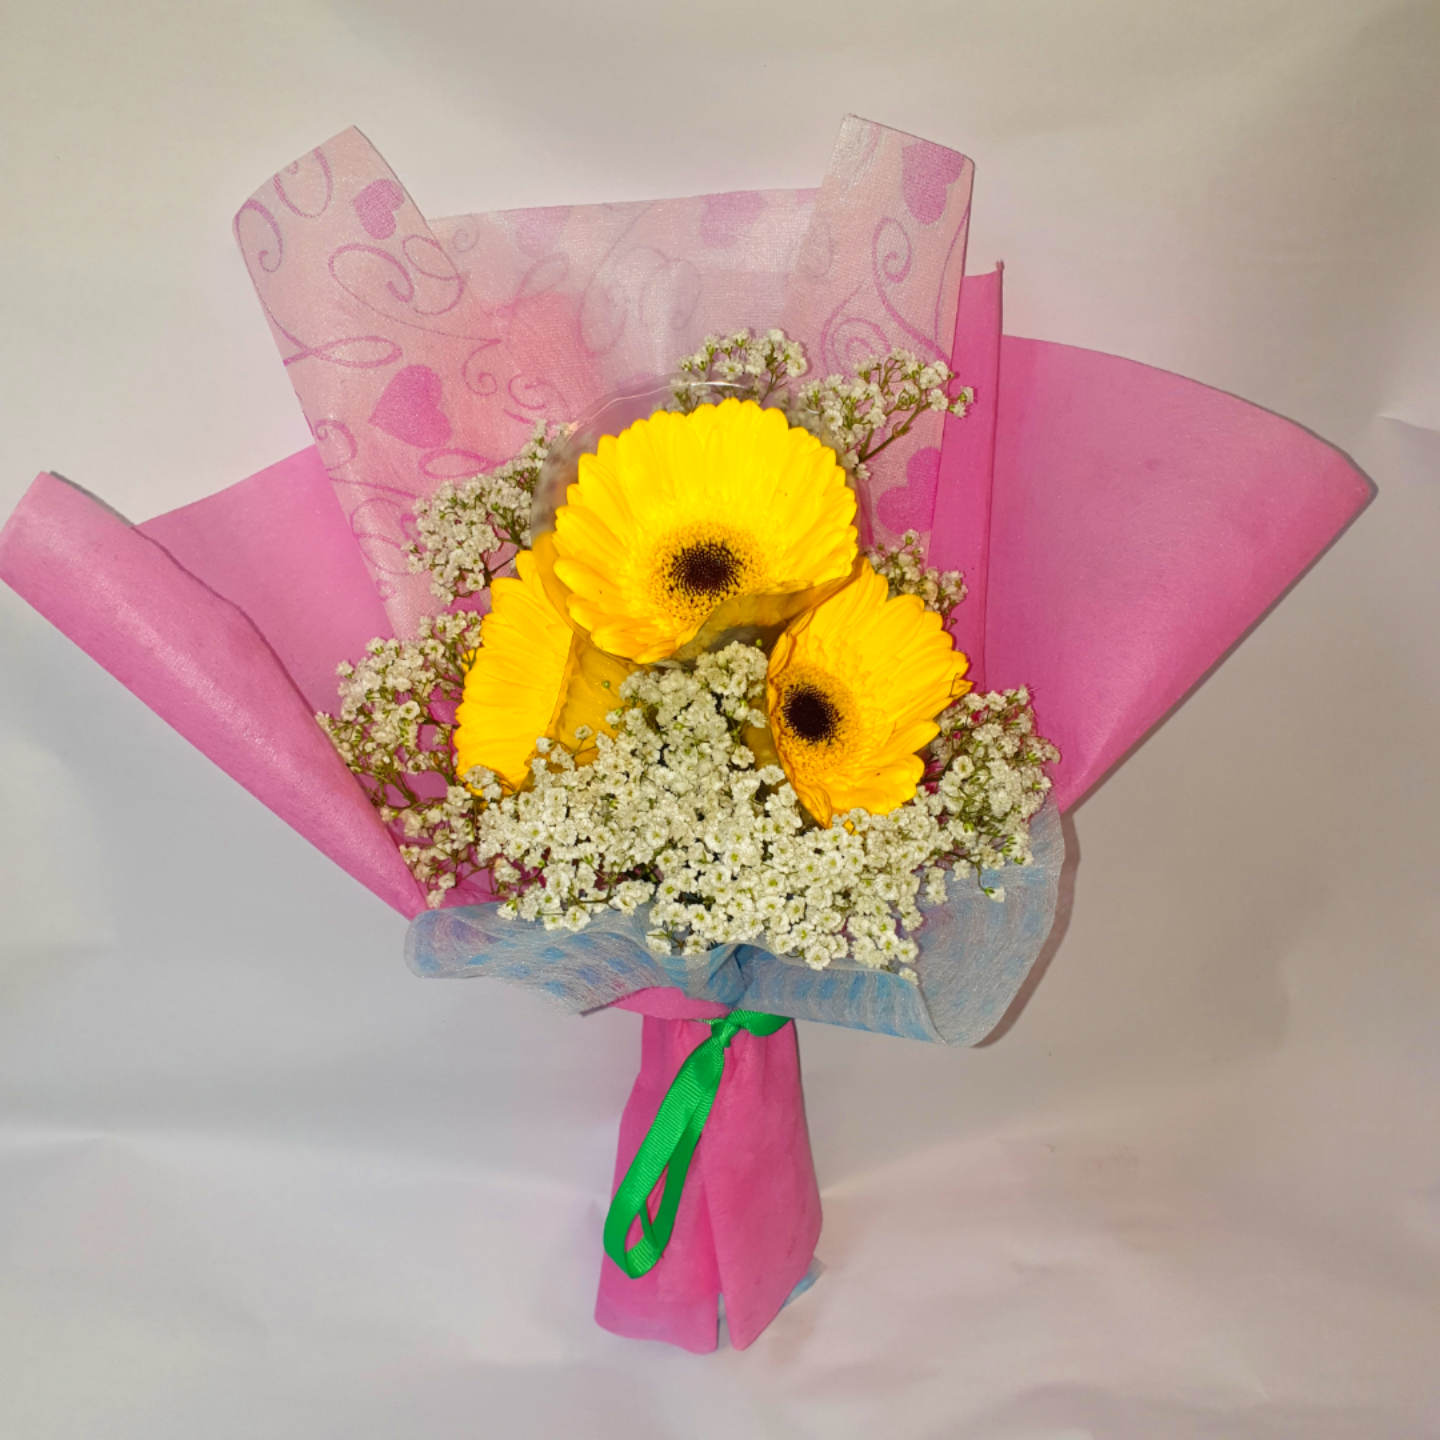 (NEW) Vflowers ( 2 Shocking Pink or Yellow Gerbera ) With Baby's Breath